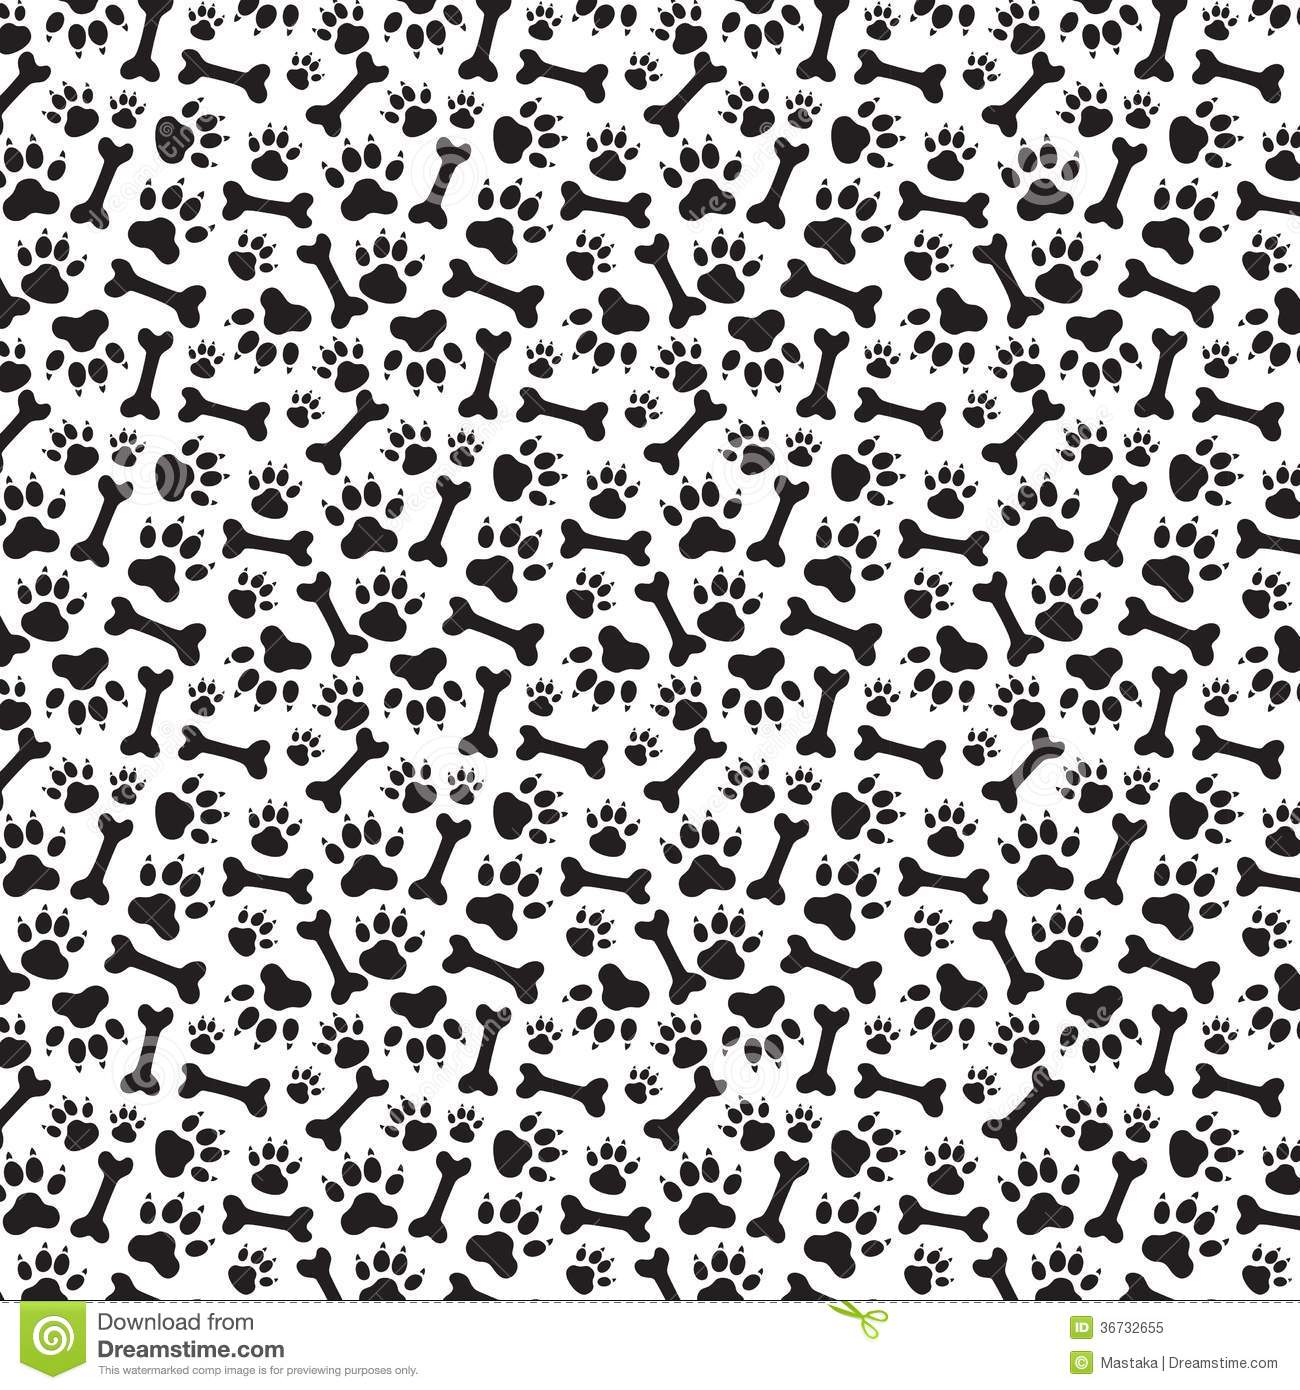 Cute Paw Print Wallpaper Traces Of Dog And Bones Seamless Royalty Free Stock Photo